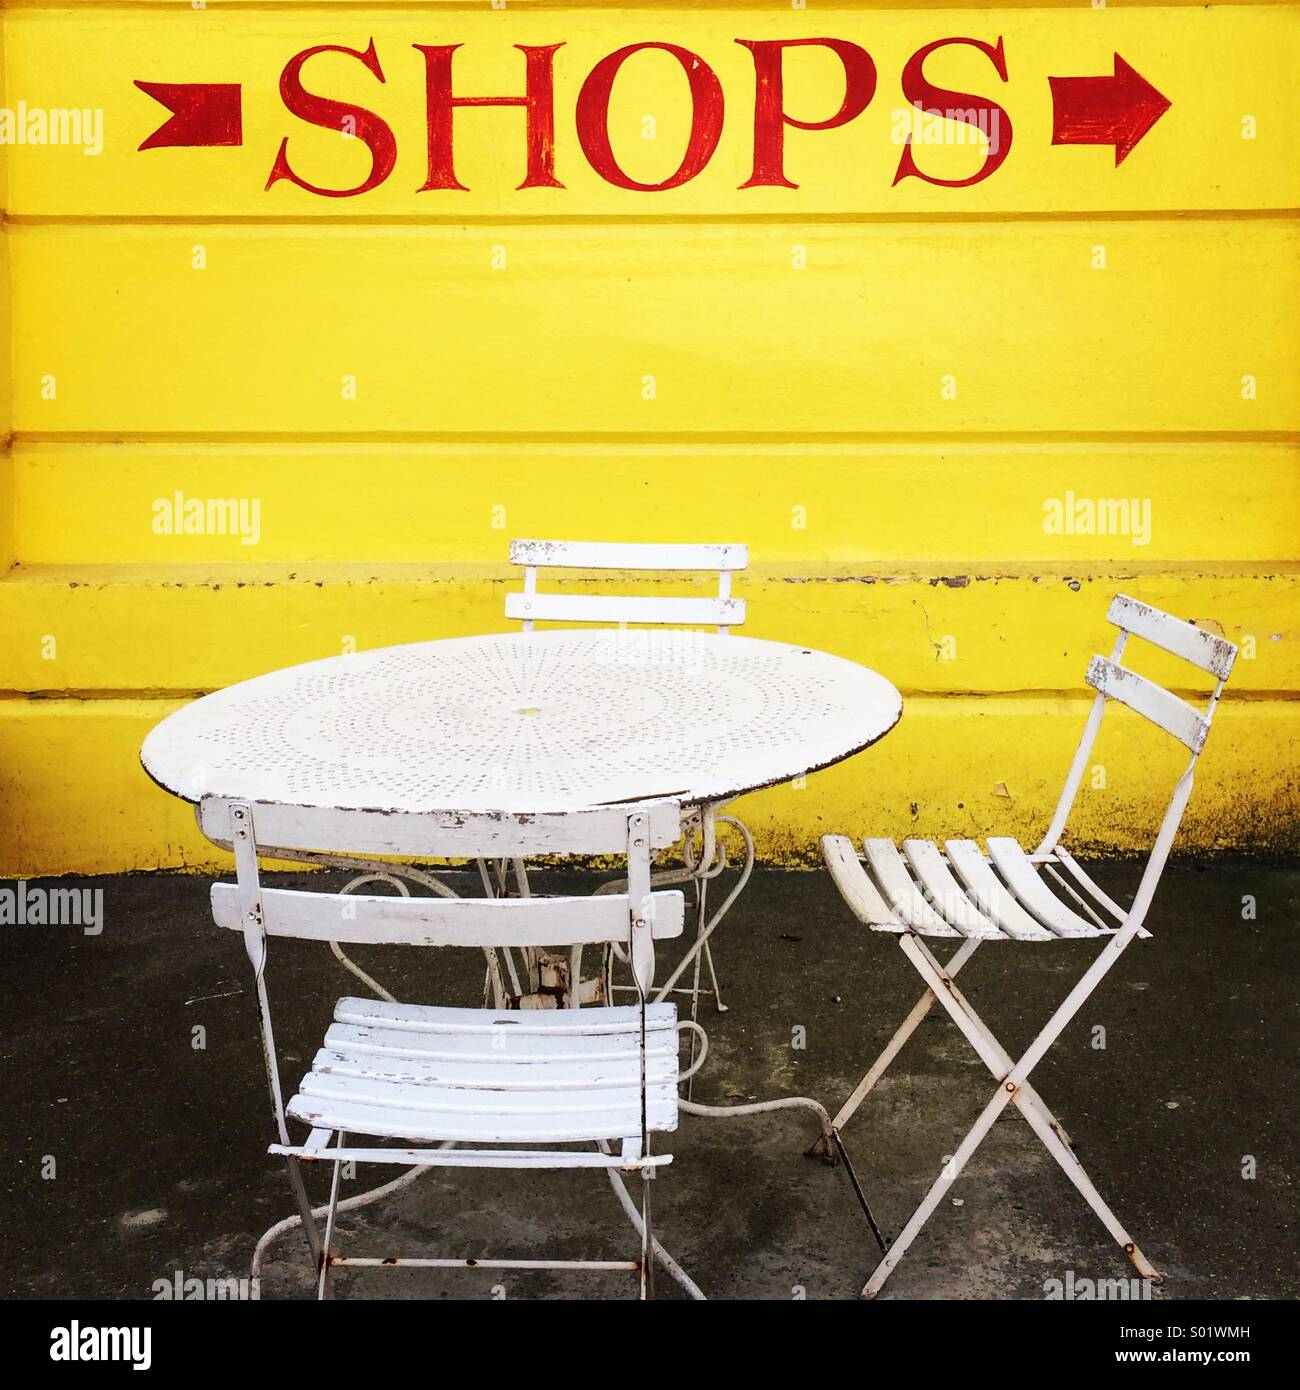 Sign for shops on yellow wall with white garden chairs and table - Stock Image